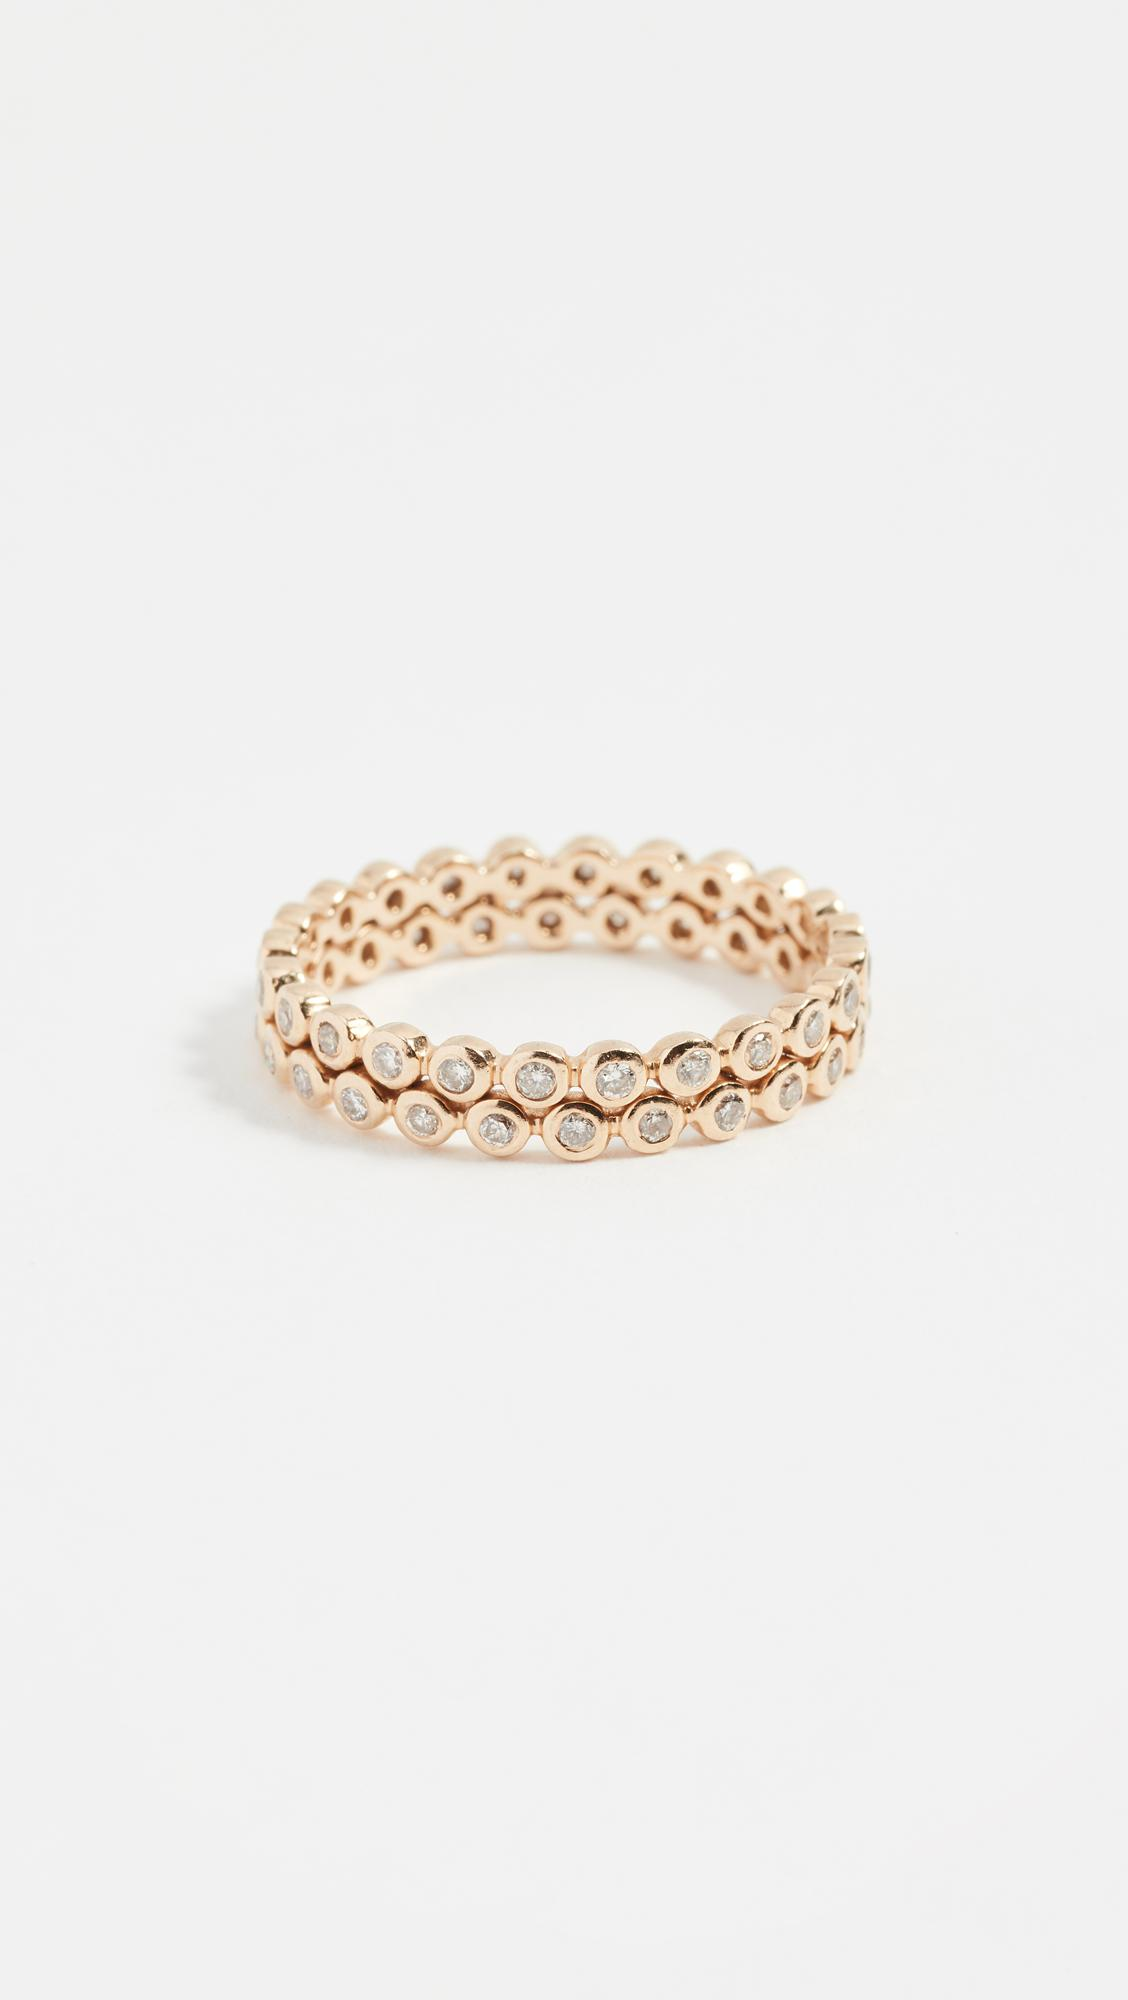 SHAY 14k Gold Double Row Diamond Eternity Band in Yellow Gold (Metallic)